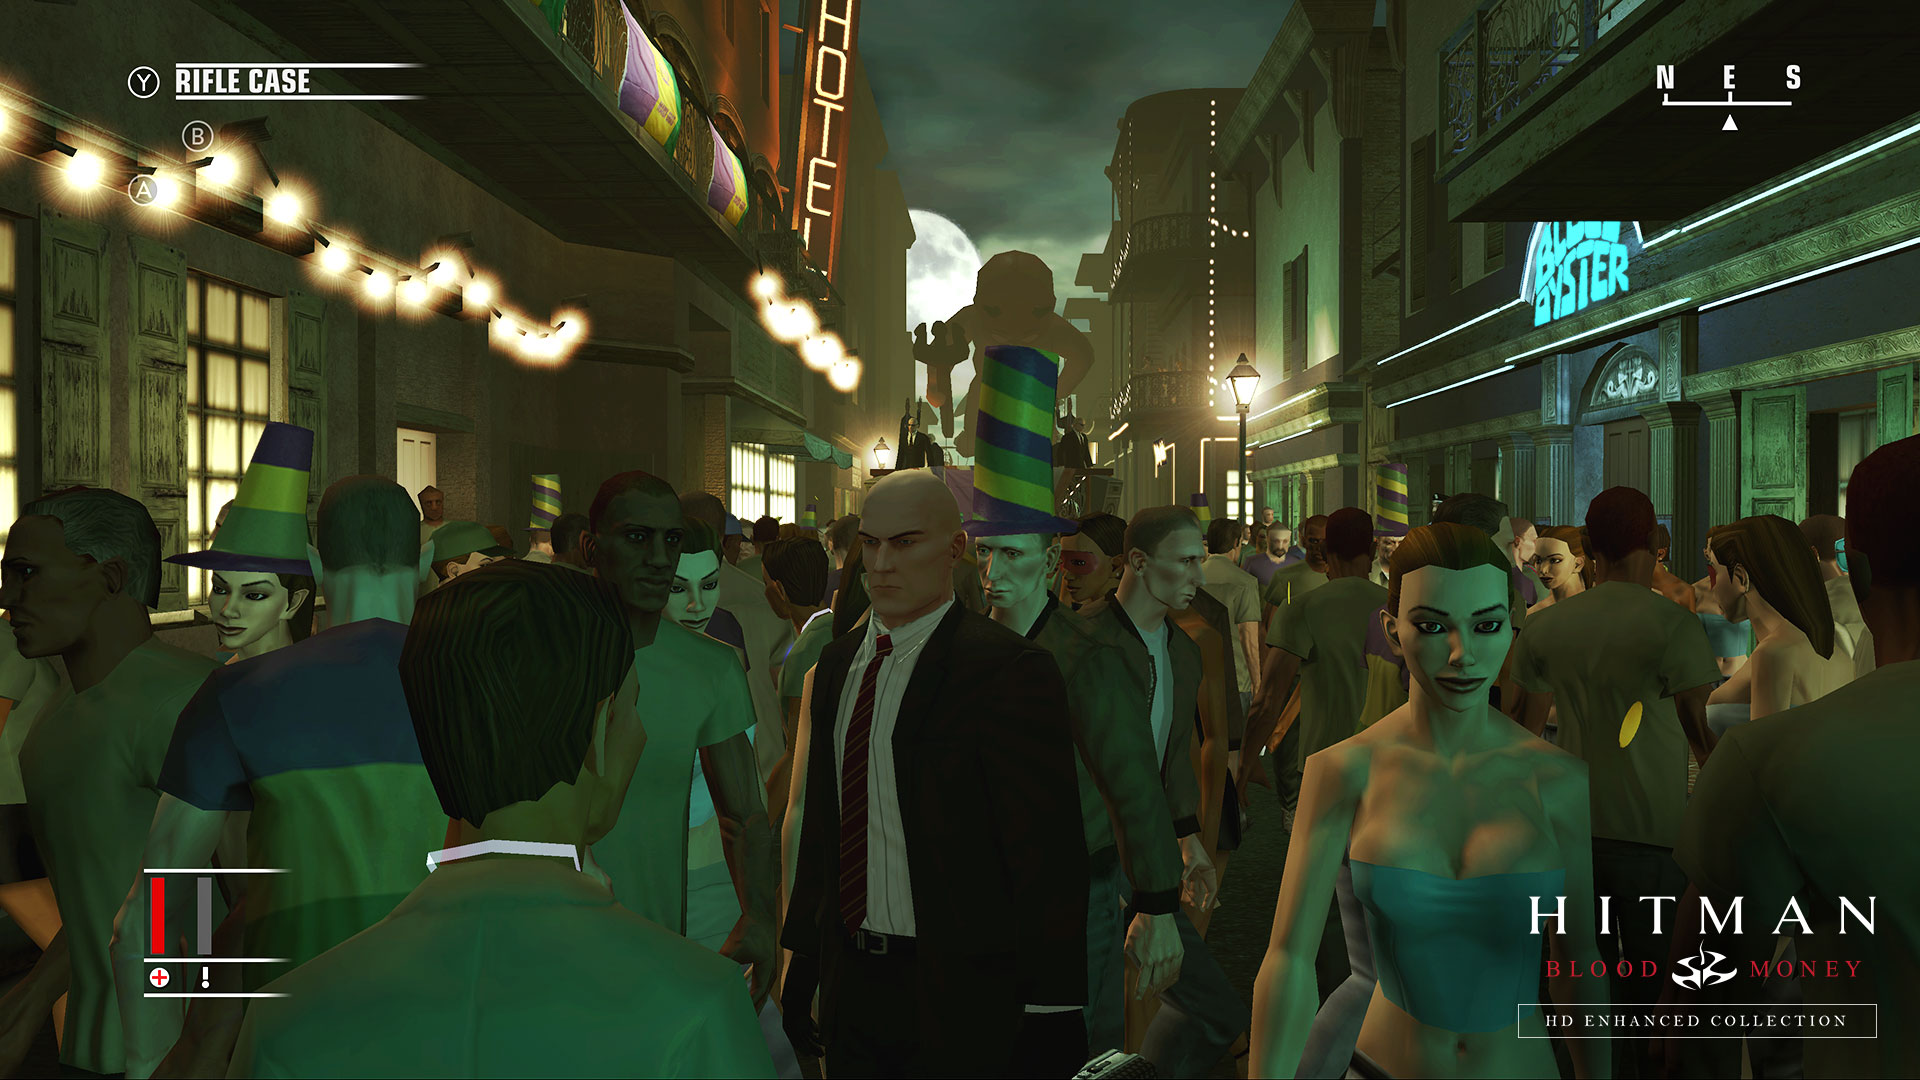 """Hitman: Blood Money"" aus der ""Hitman HD Enhanced Collection"""